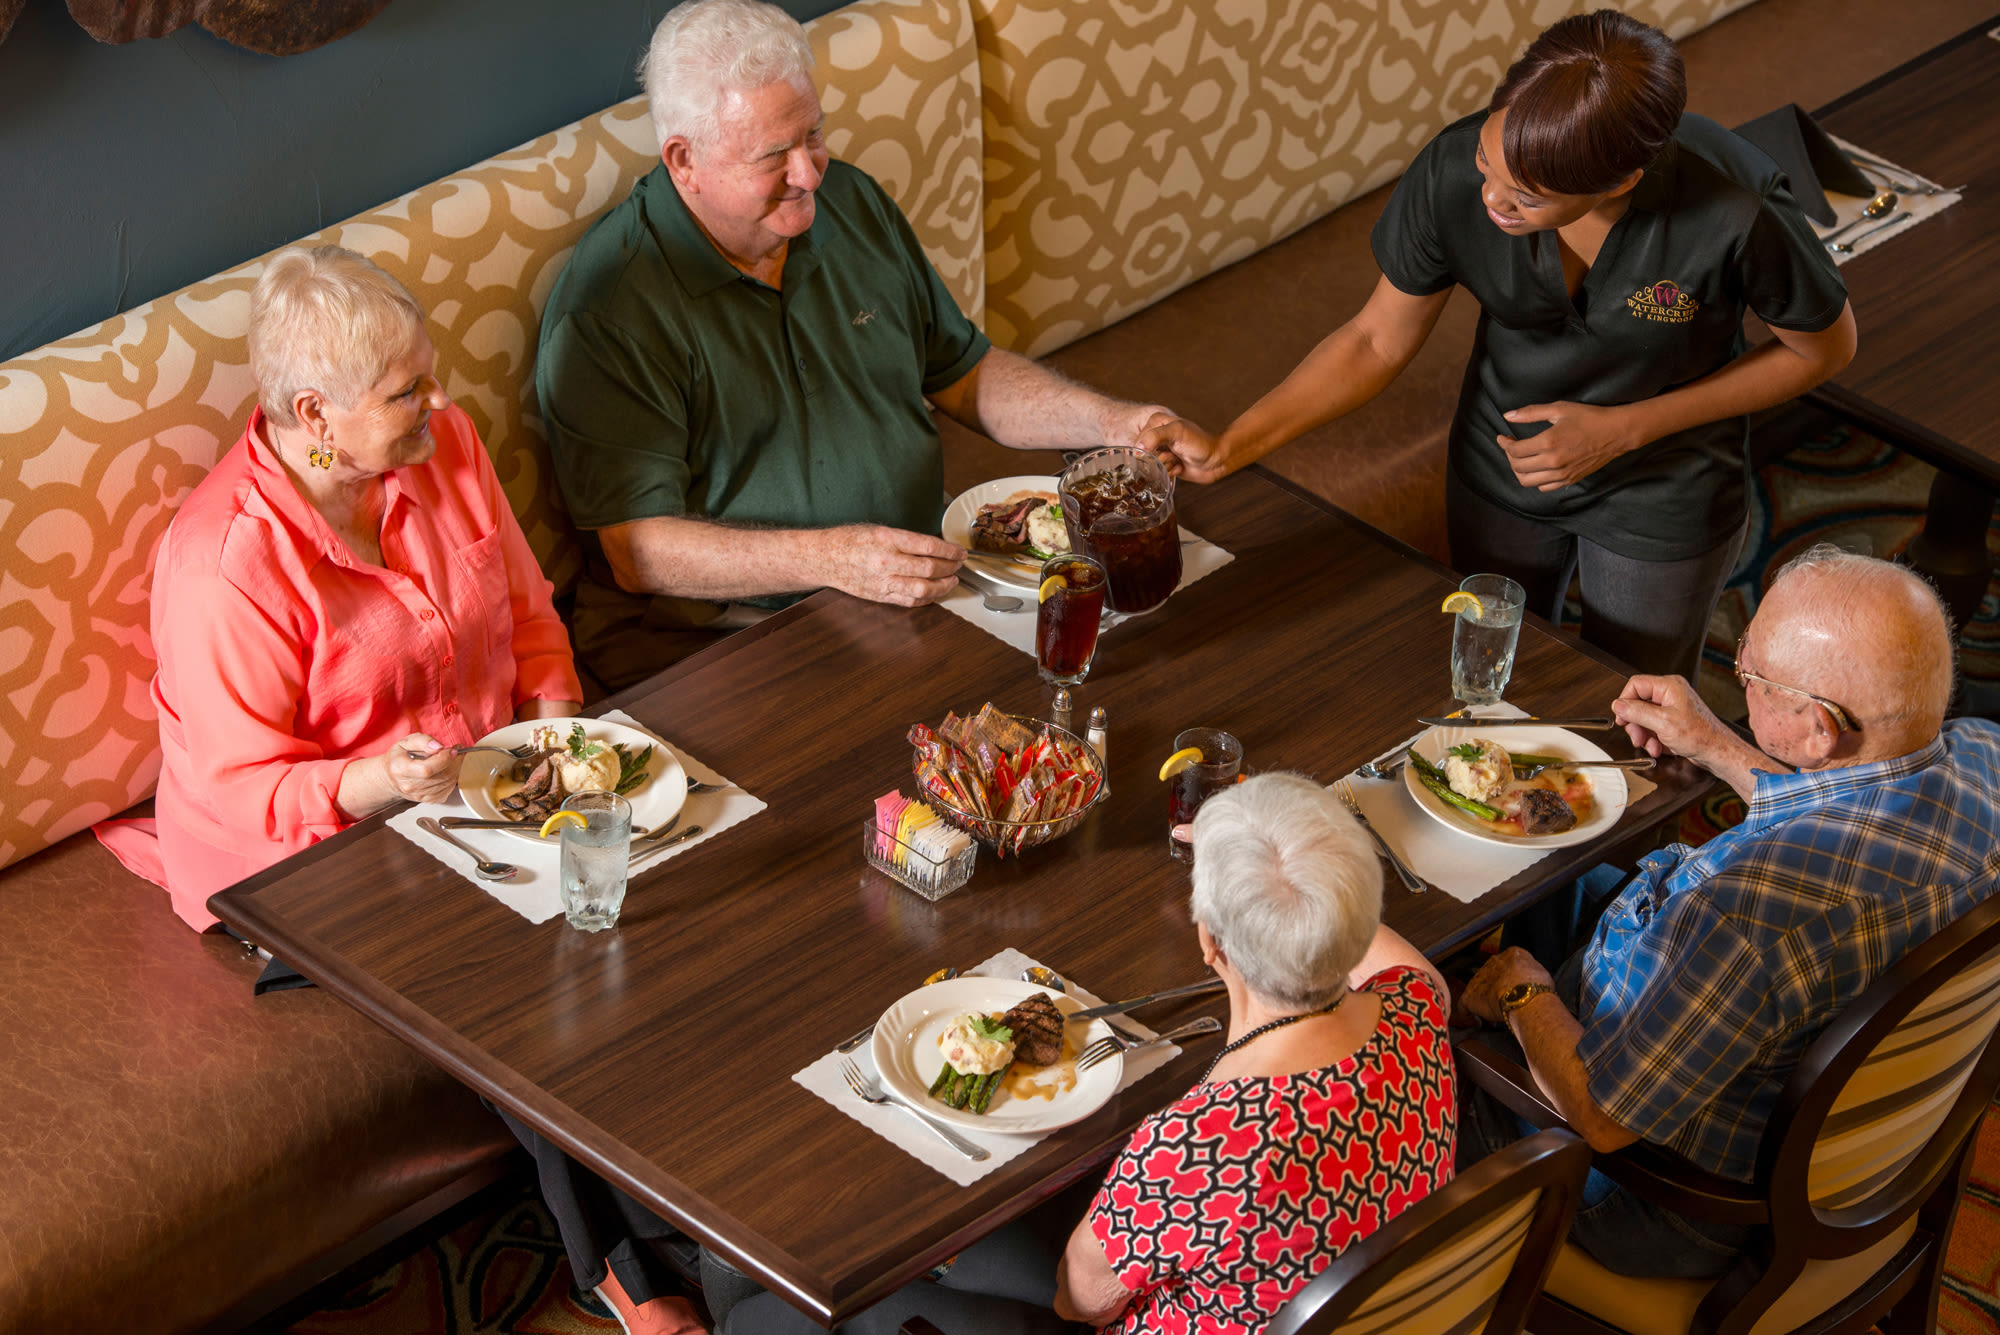 Residents enjoying a meal at an Integrated Senior Lifestyles community